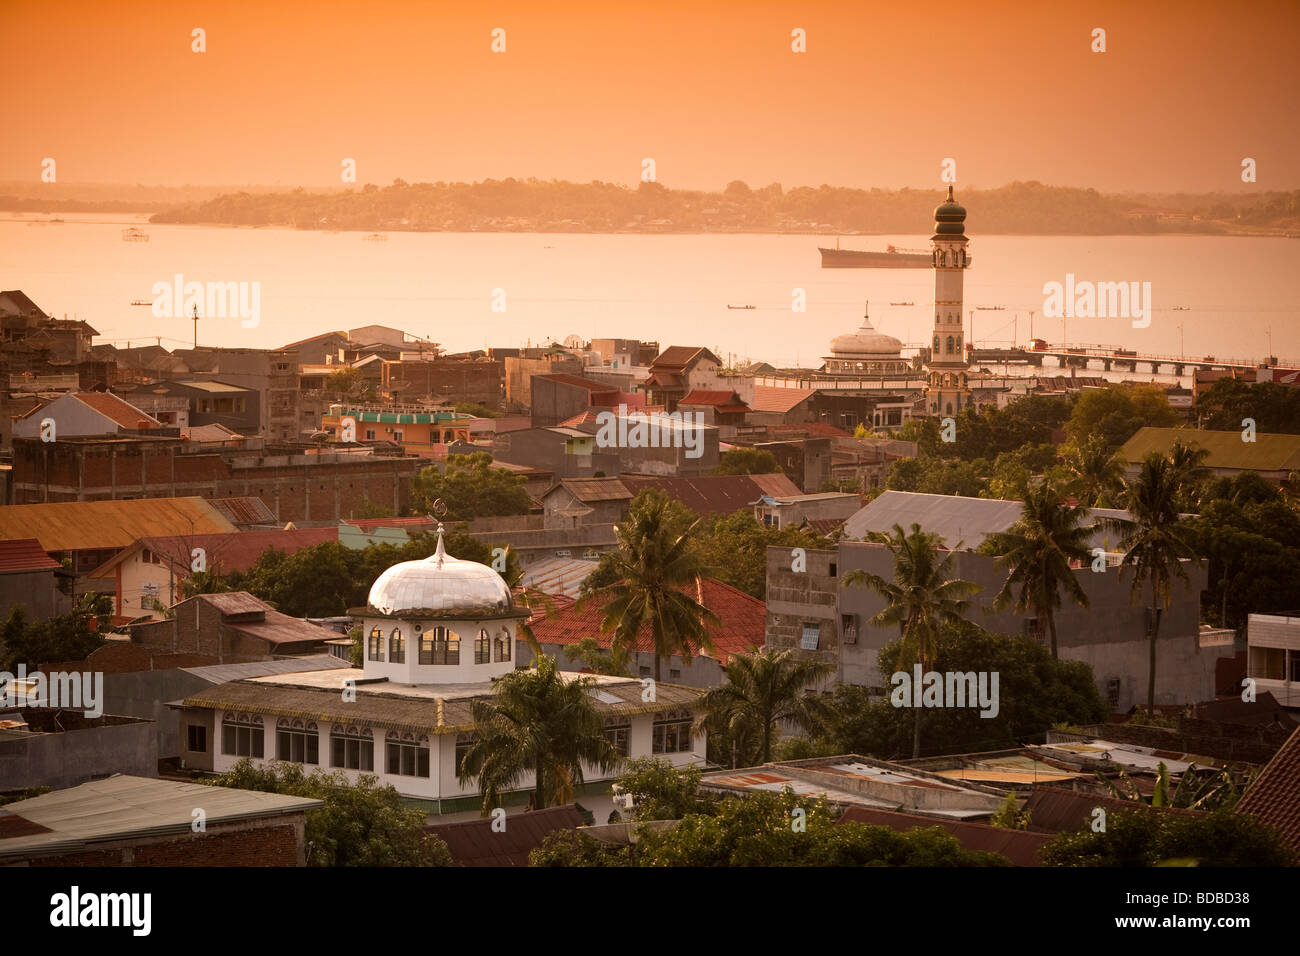 Indonesia Sulawesi West Coast Pare Pare town centre in late afternoon light - Stock Image